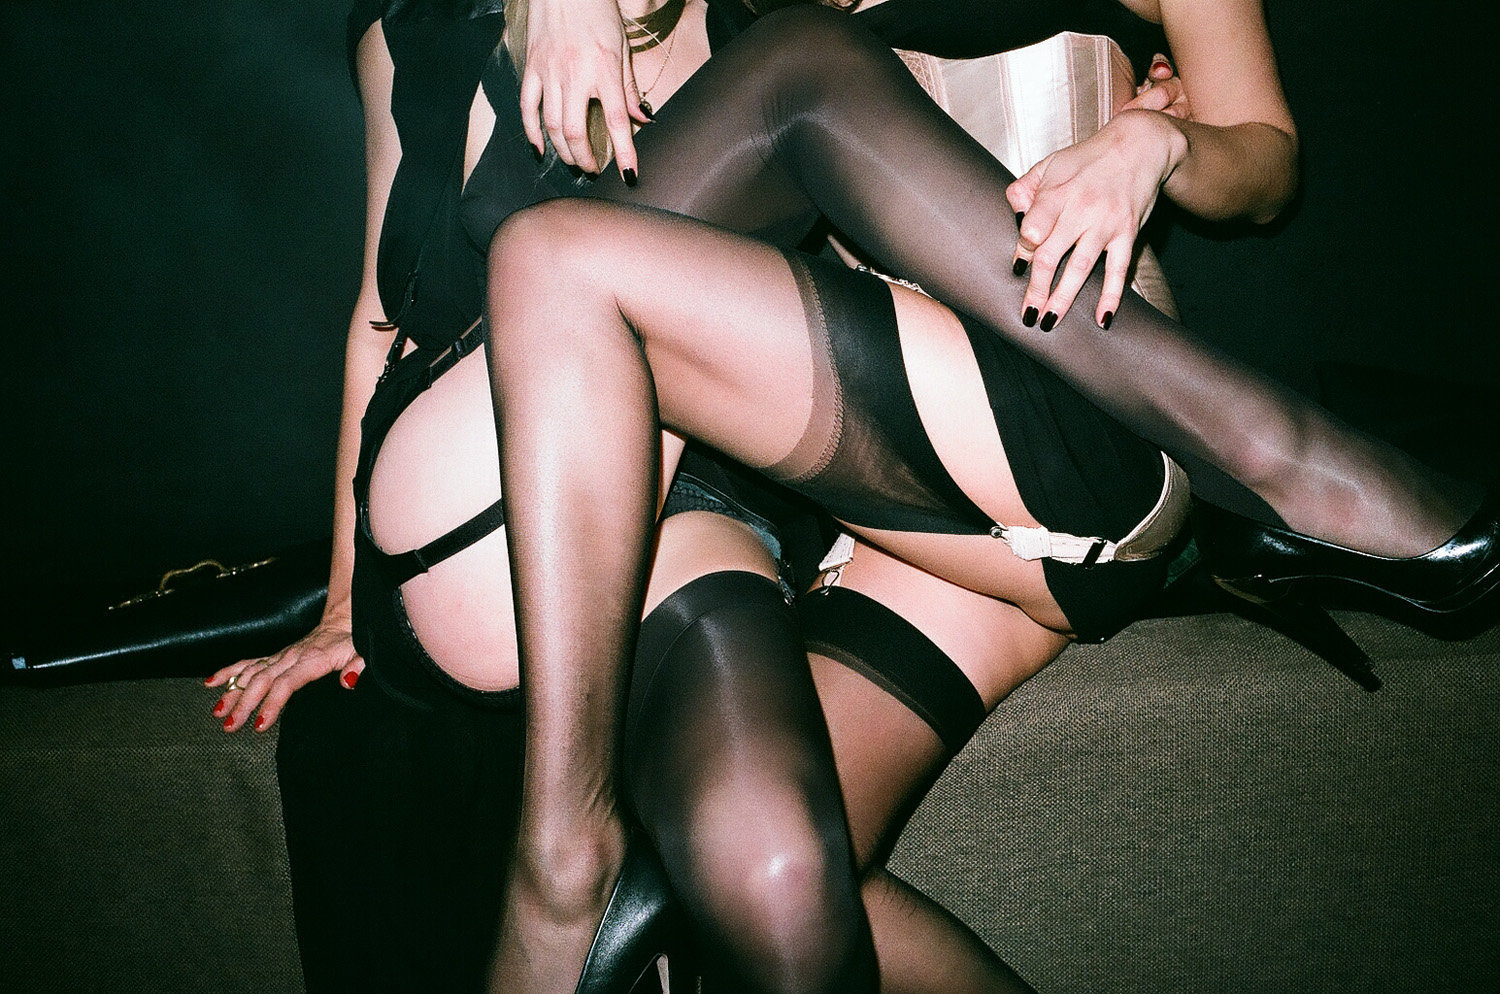 26_nylons on the couch_2.jpg